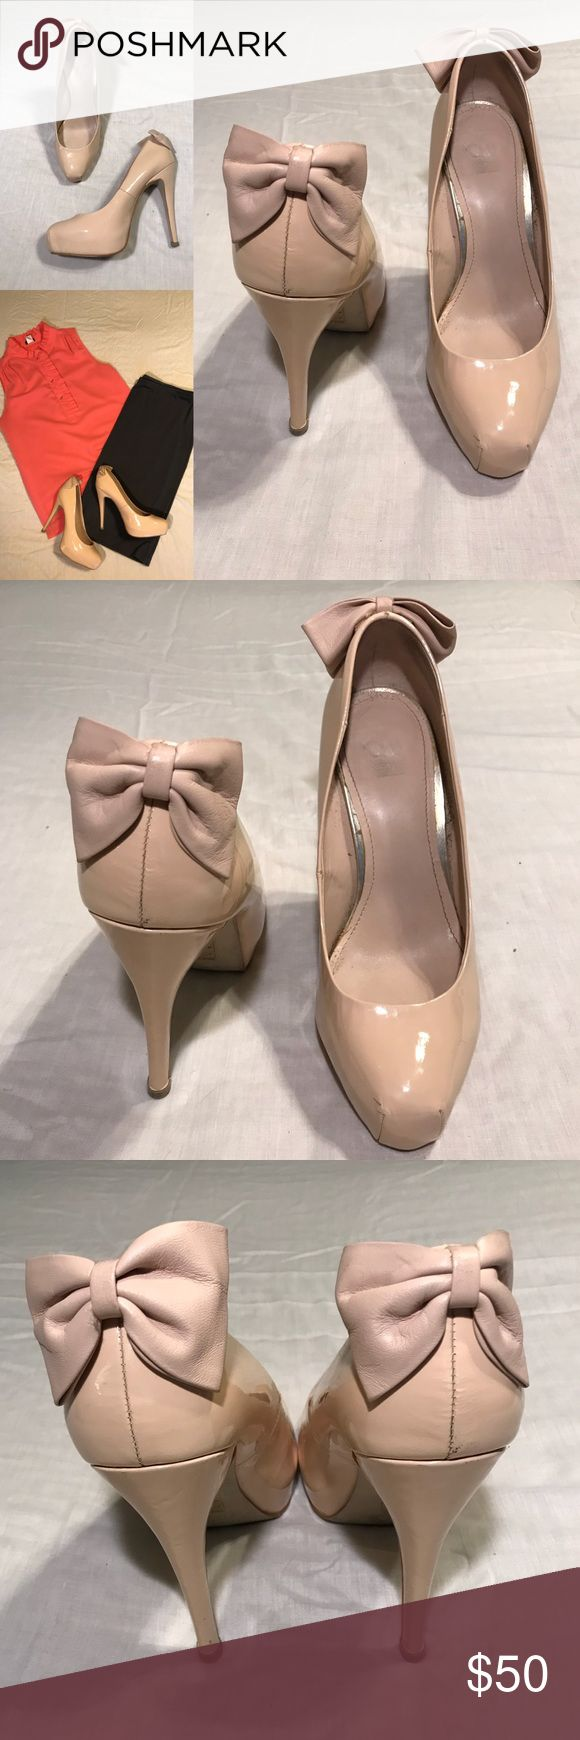 "DV by Dolce Vita Nude Patent Platform Bow Pump Ballet inspired Dolce Vita nude patent leather hidden platform pump with pointe shoe-esque toe and bow detail at heel. 1"" hidden platform. Bow is soft leather (not patent). 5"" heel. Heel cap is in great shape - barely worn. Size 9M. DV by Dolce Vita Shoes Heels"